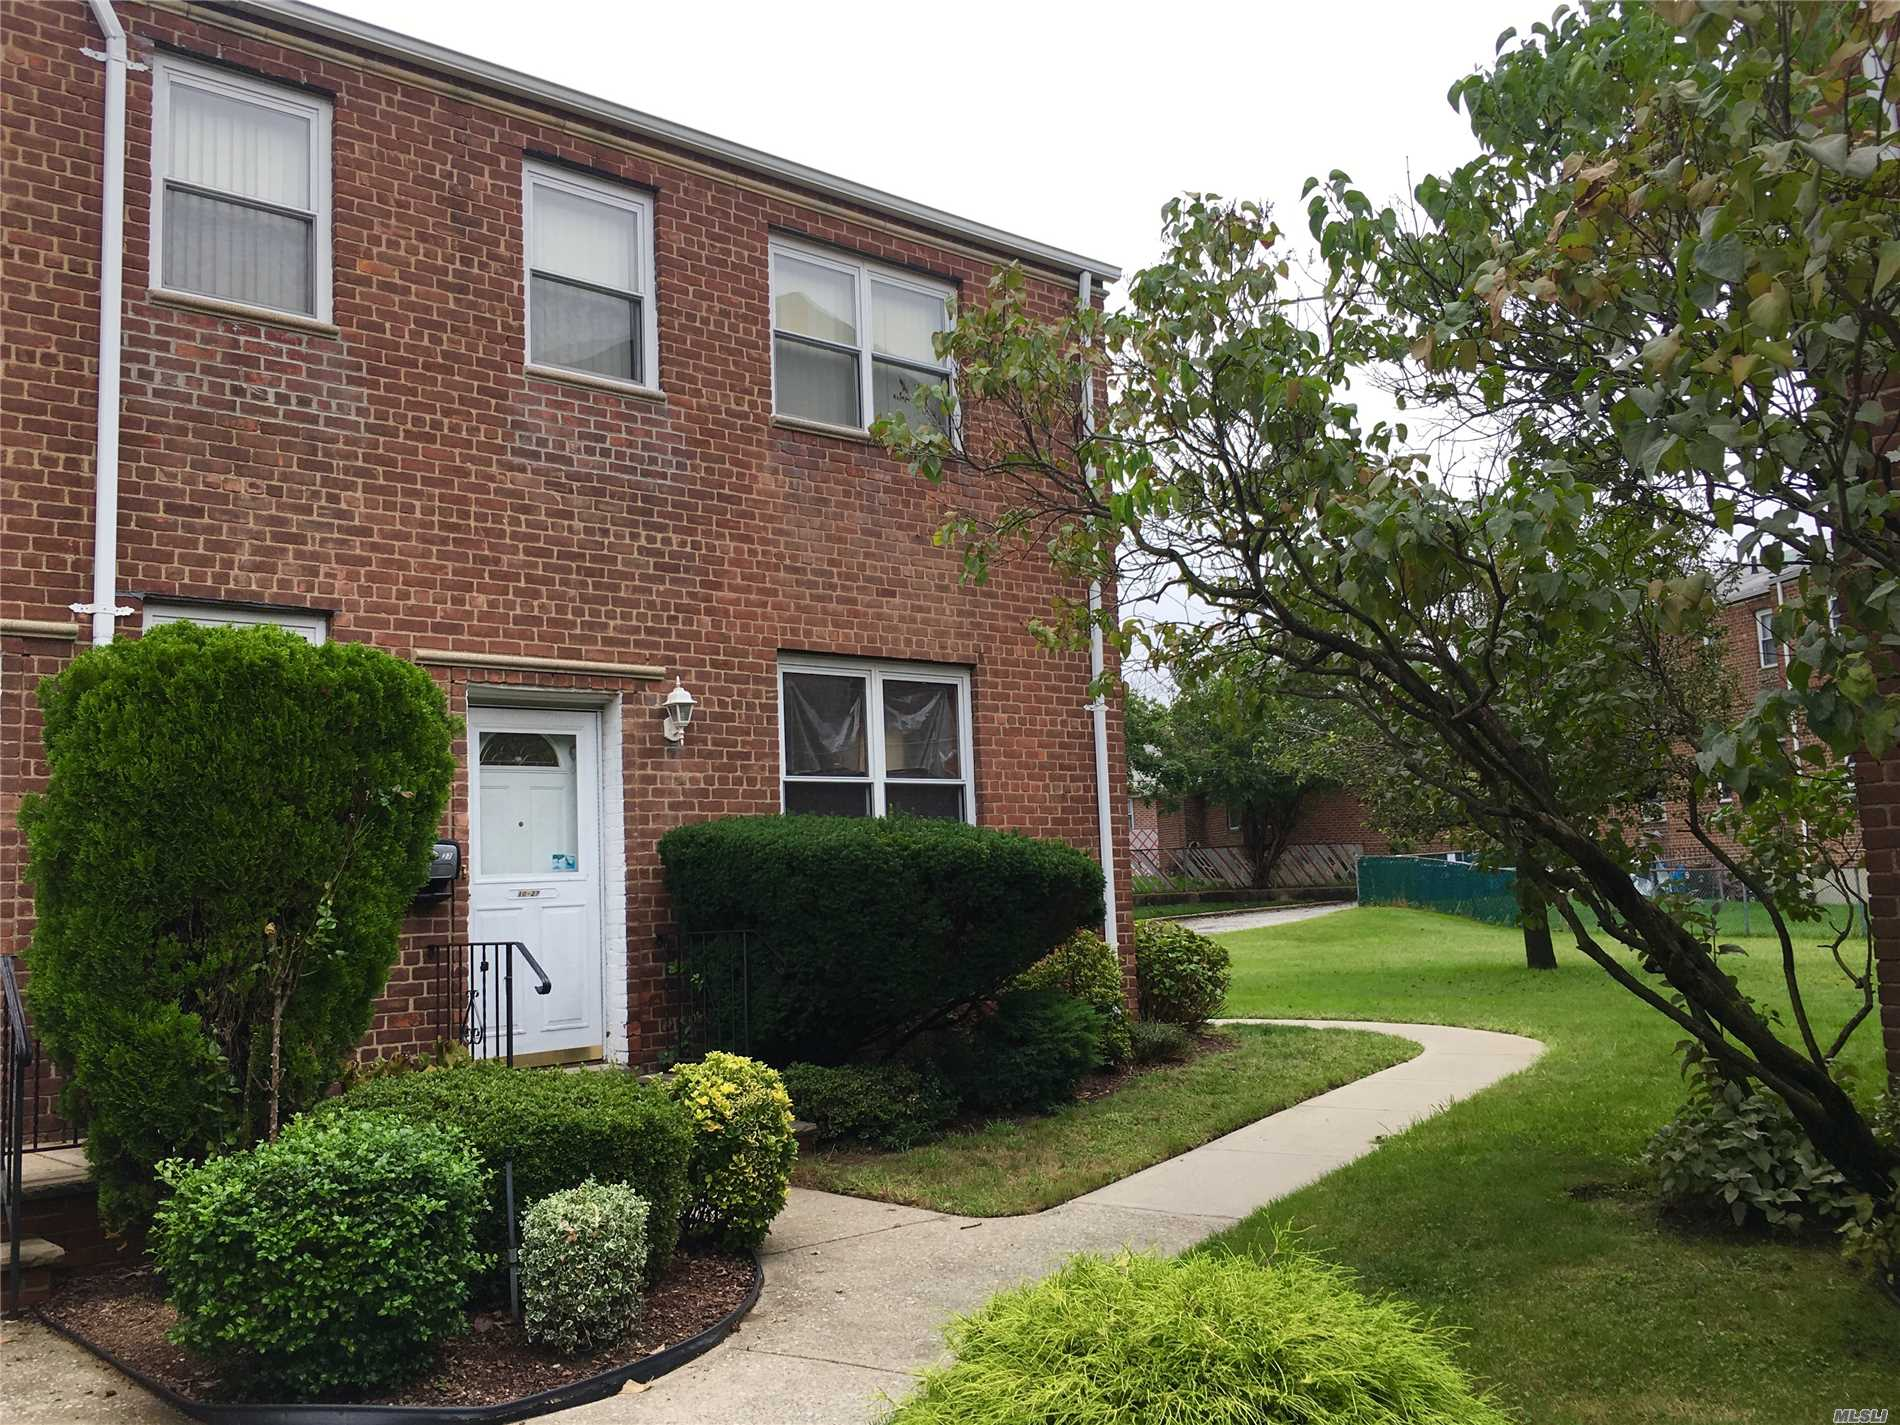 Co-Op For Sale In Malba Gardens. Corner Unit, 1st Fl. Features 2 Bedrooms, Eat-In-Kitchen, Living Room/Dining Room Combo, And 1 Full Bath, Hardwood Flooring Throughout. Located Near Shopping Centers And Public Transportation! A Must See!!!